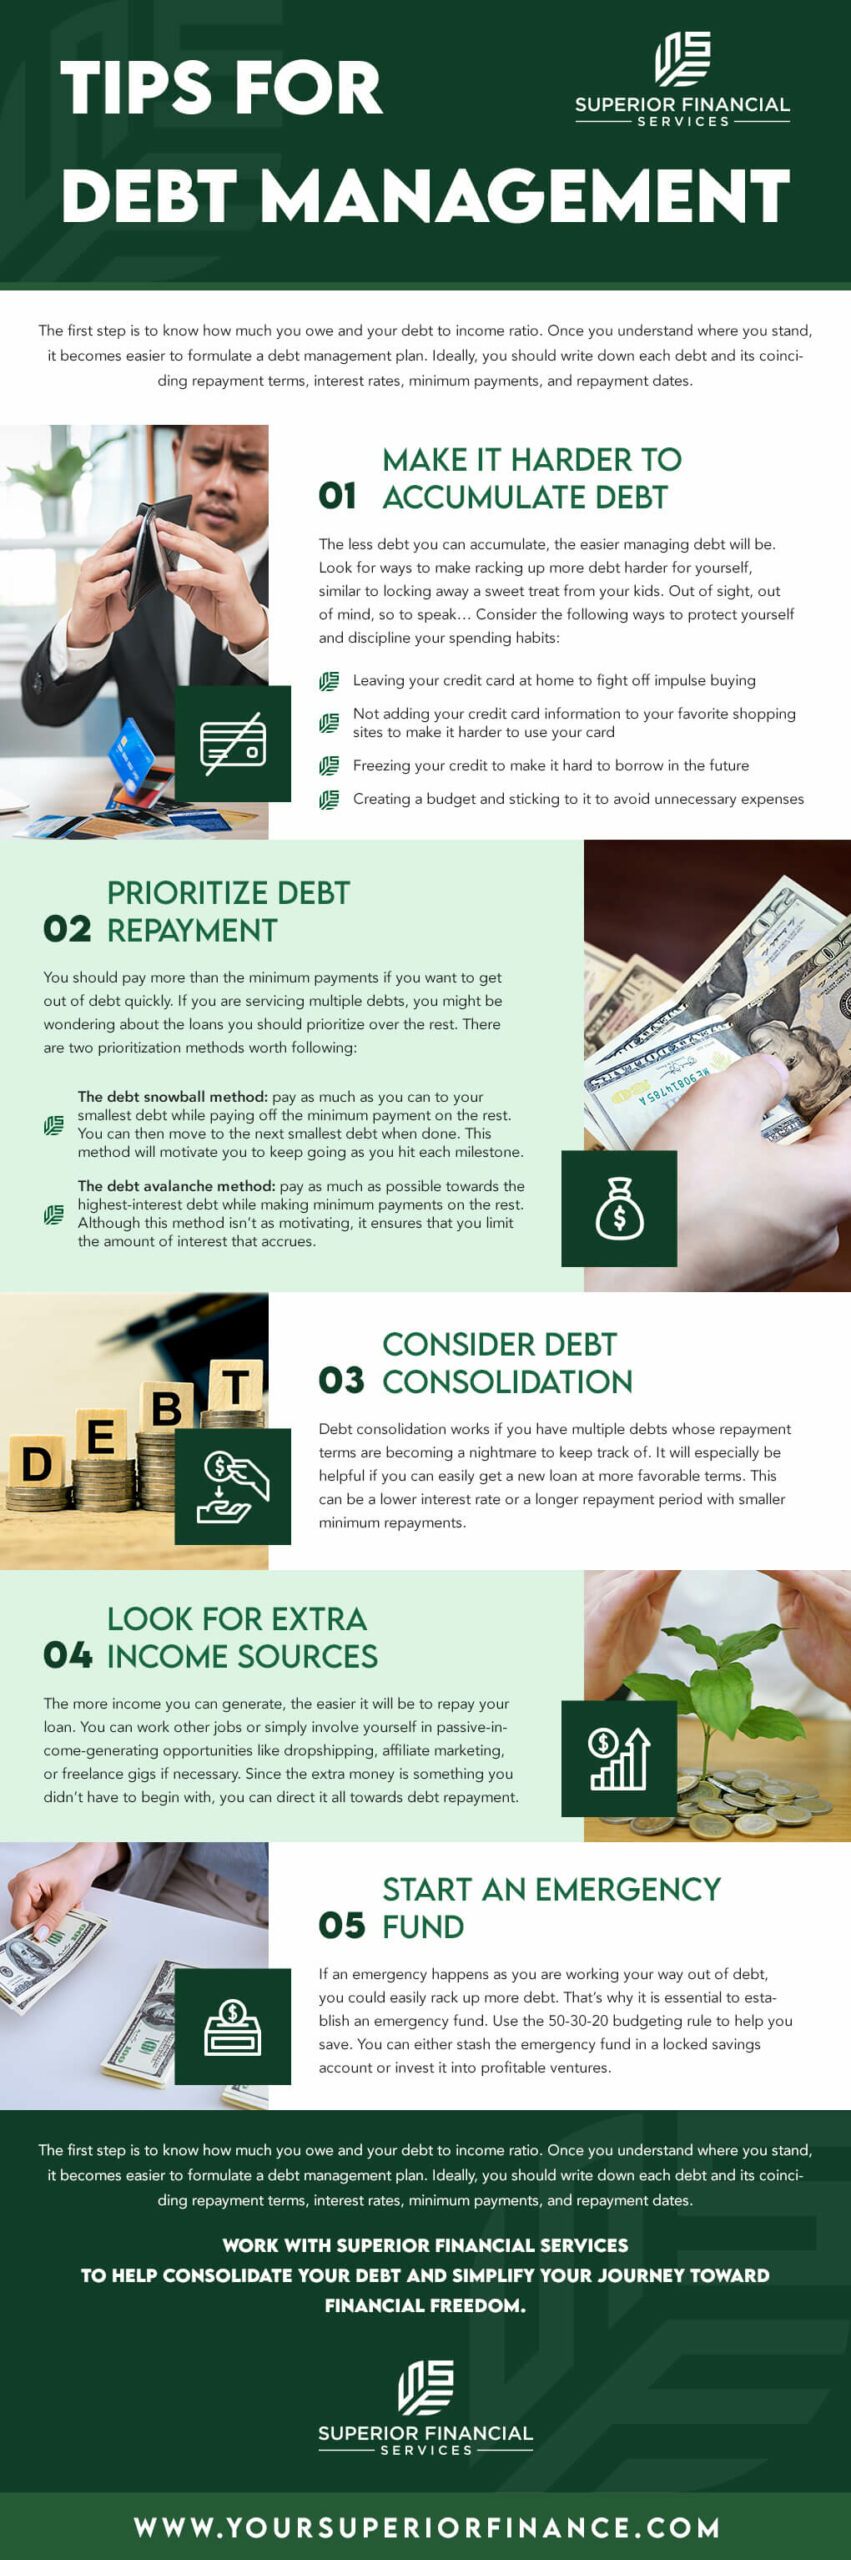 tips-for-debt-management-infographic-superior-financial-services